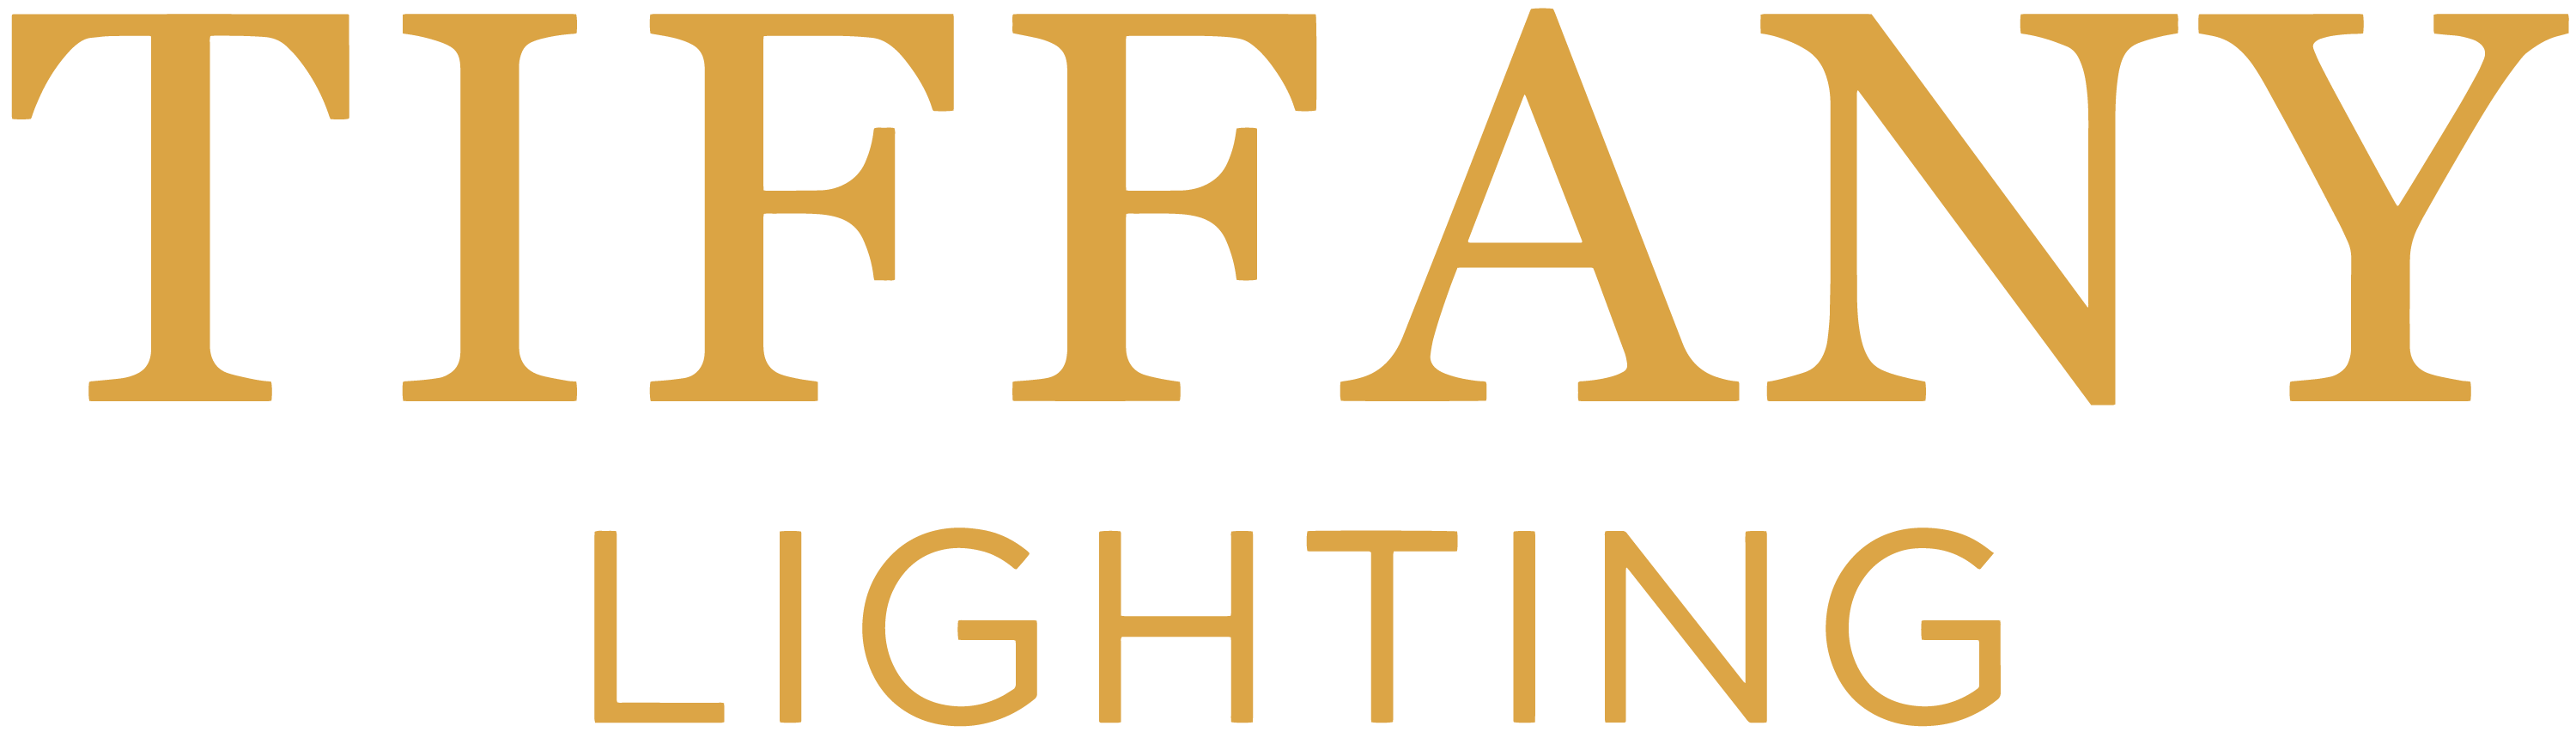 Tiffany Lighting Shop